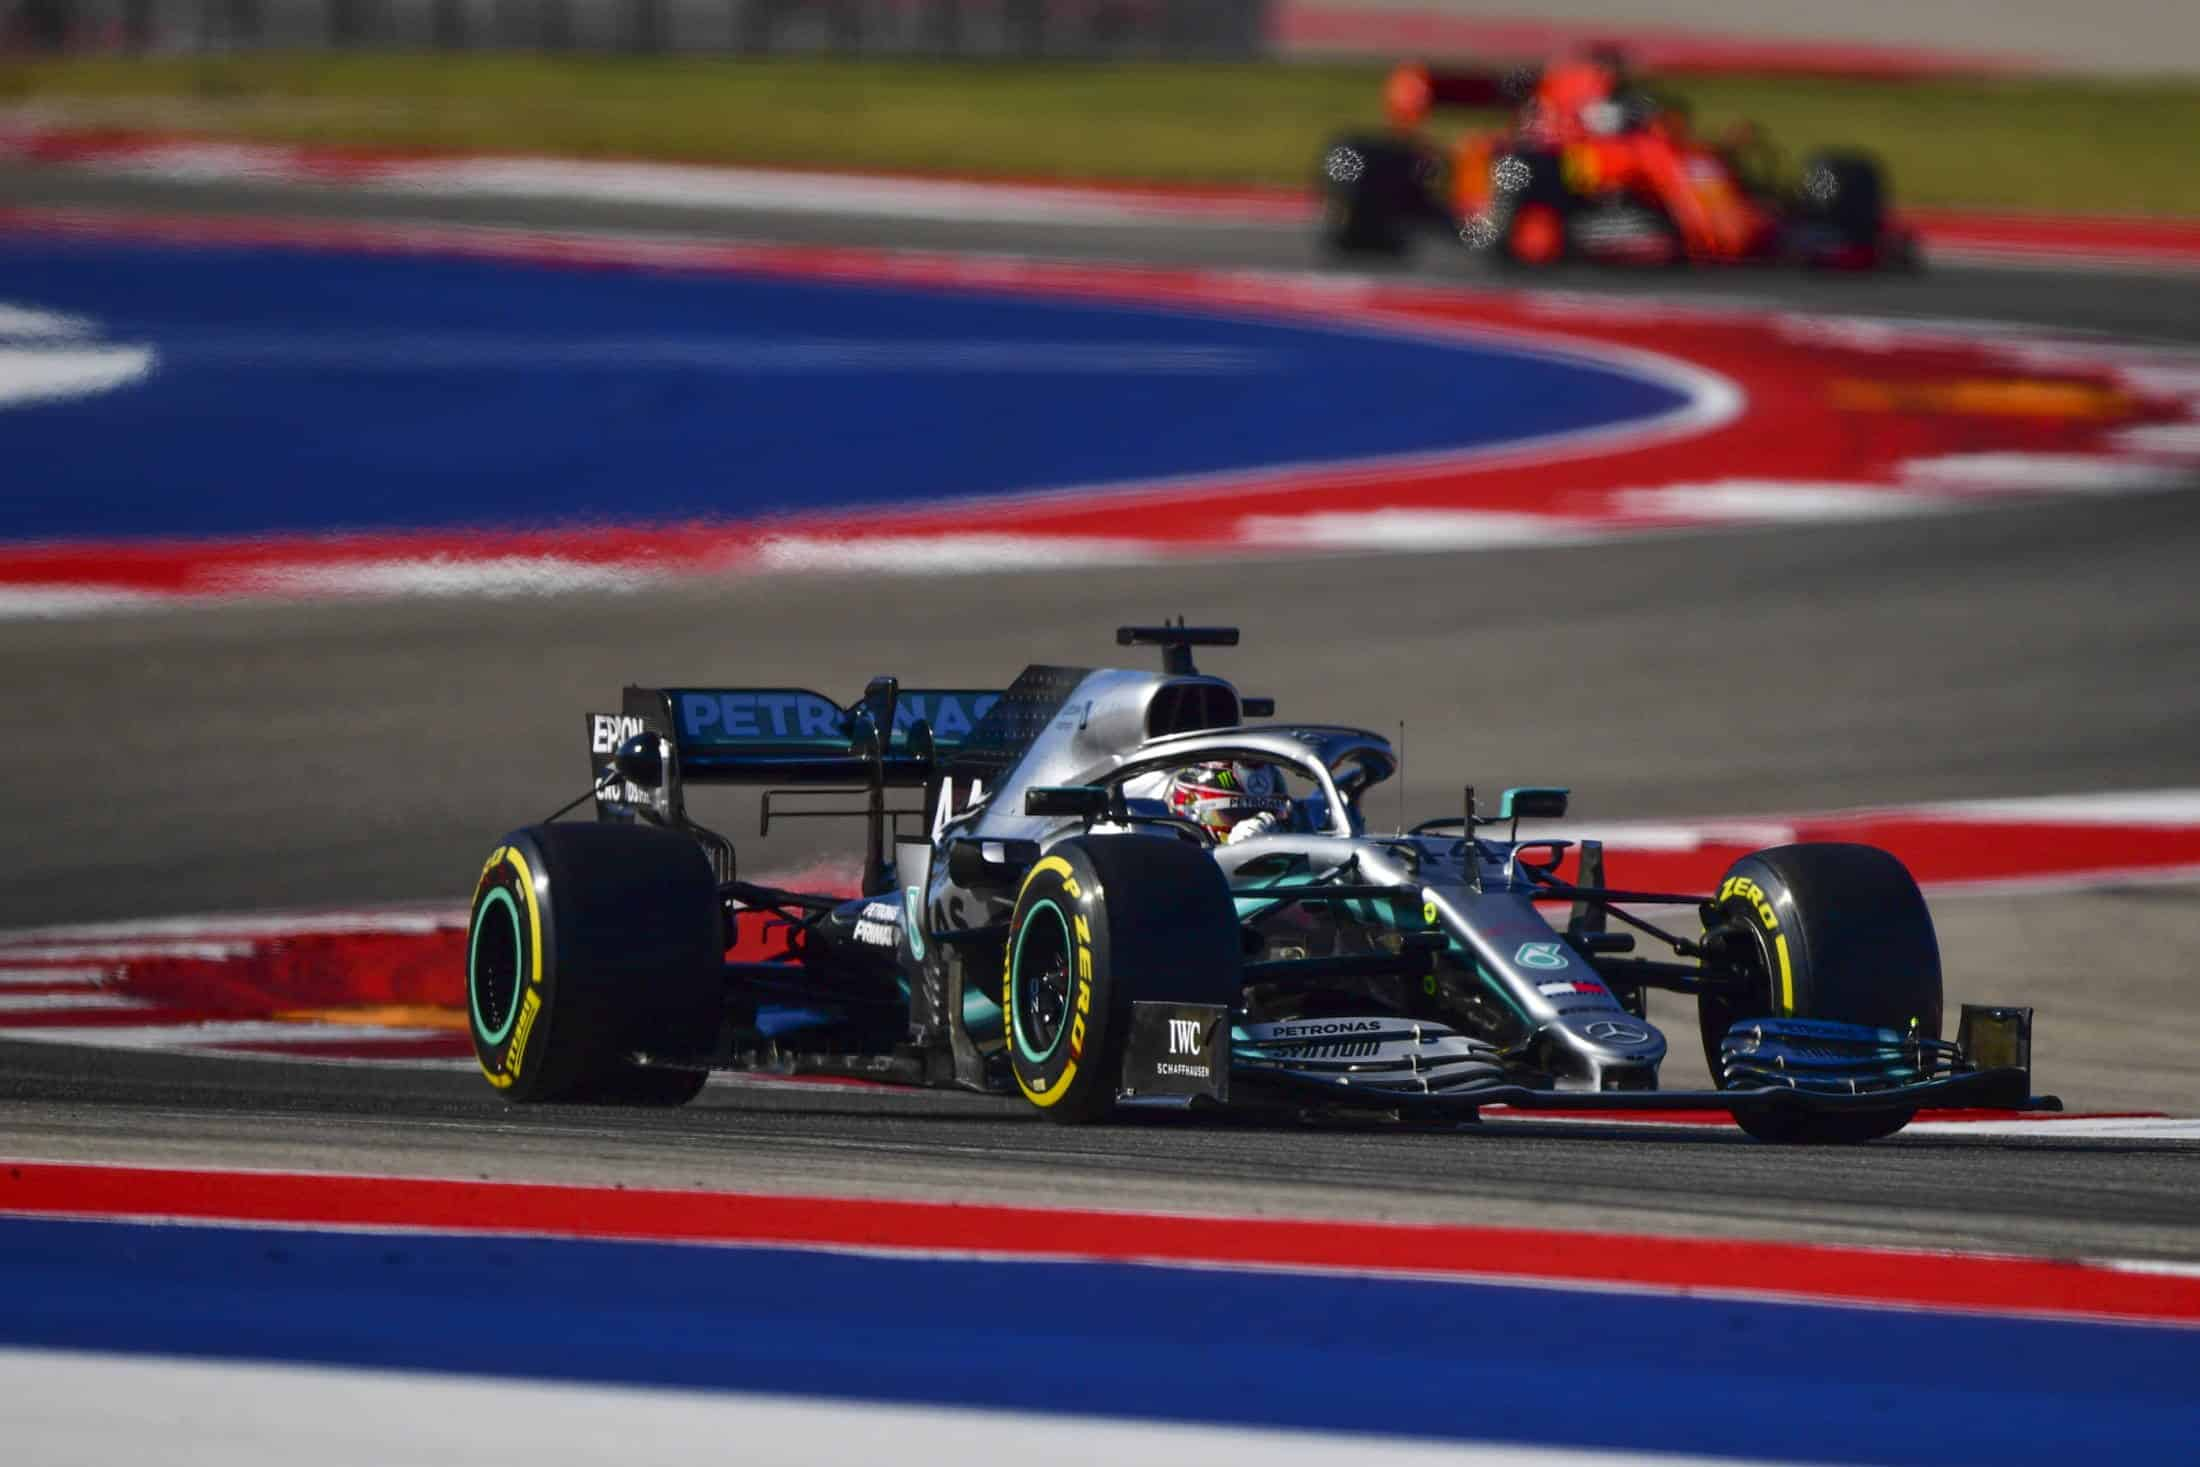 Hamilton leads Vettel USA GP Austin F1 2019 Photo Sky Sports F1